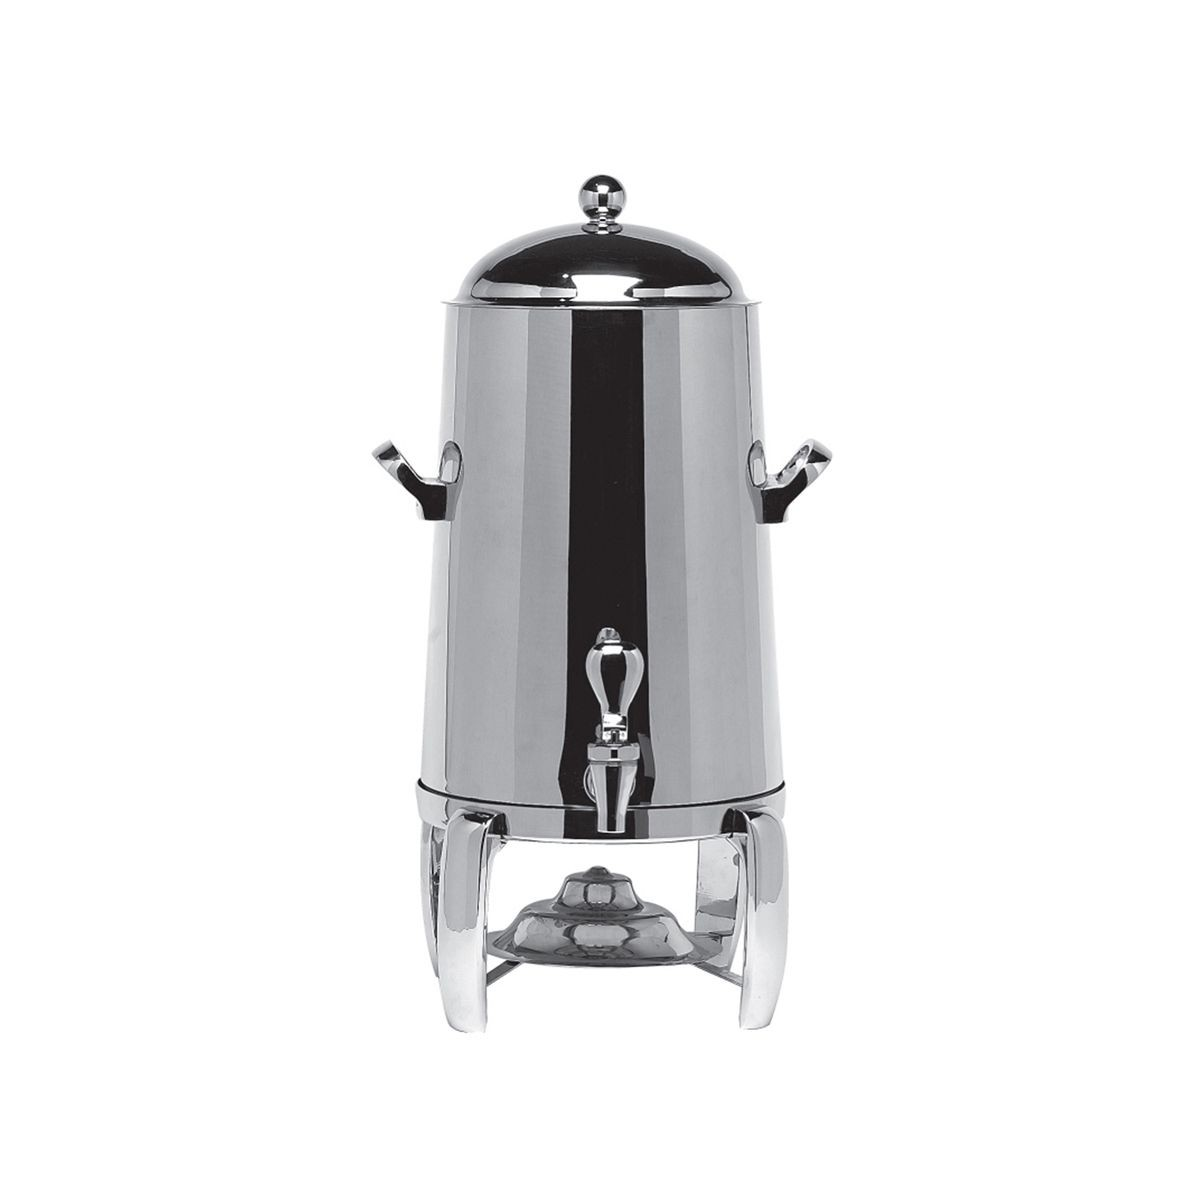 Service Ideas URN30VPS Polished Steel Flame Free Thermo Beverage Urn 3 Gallon